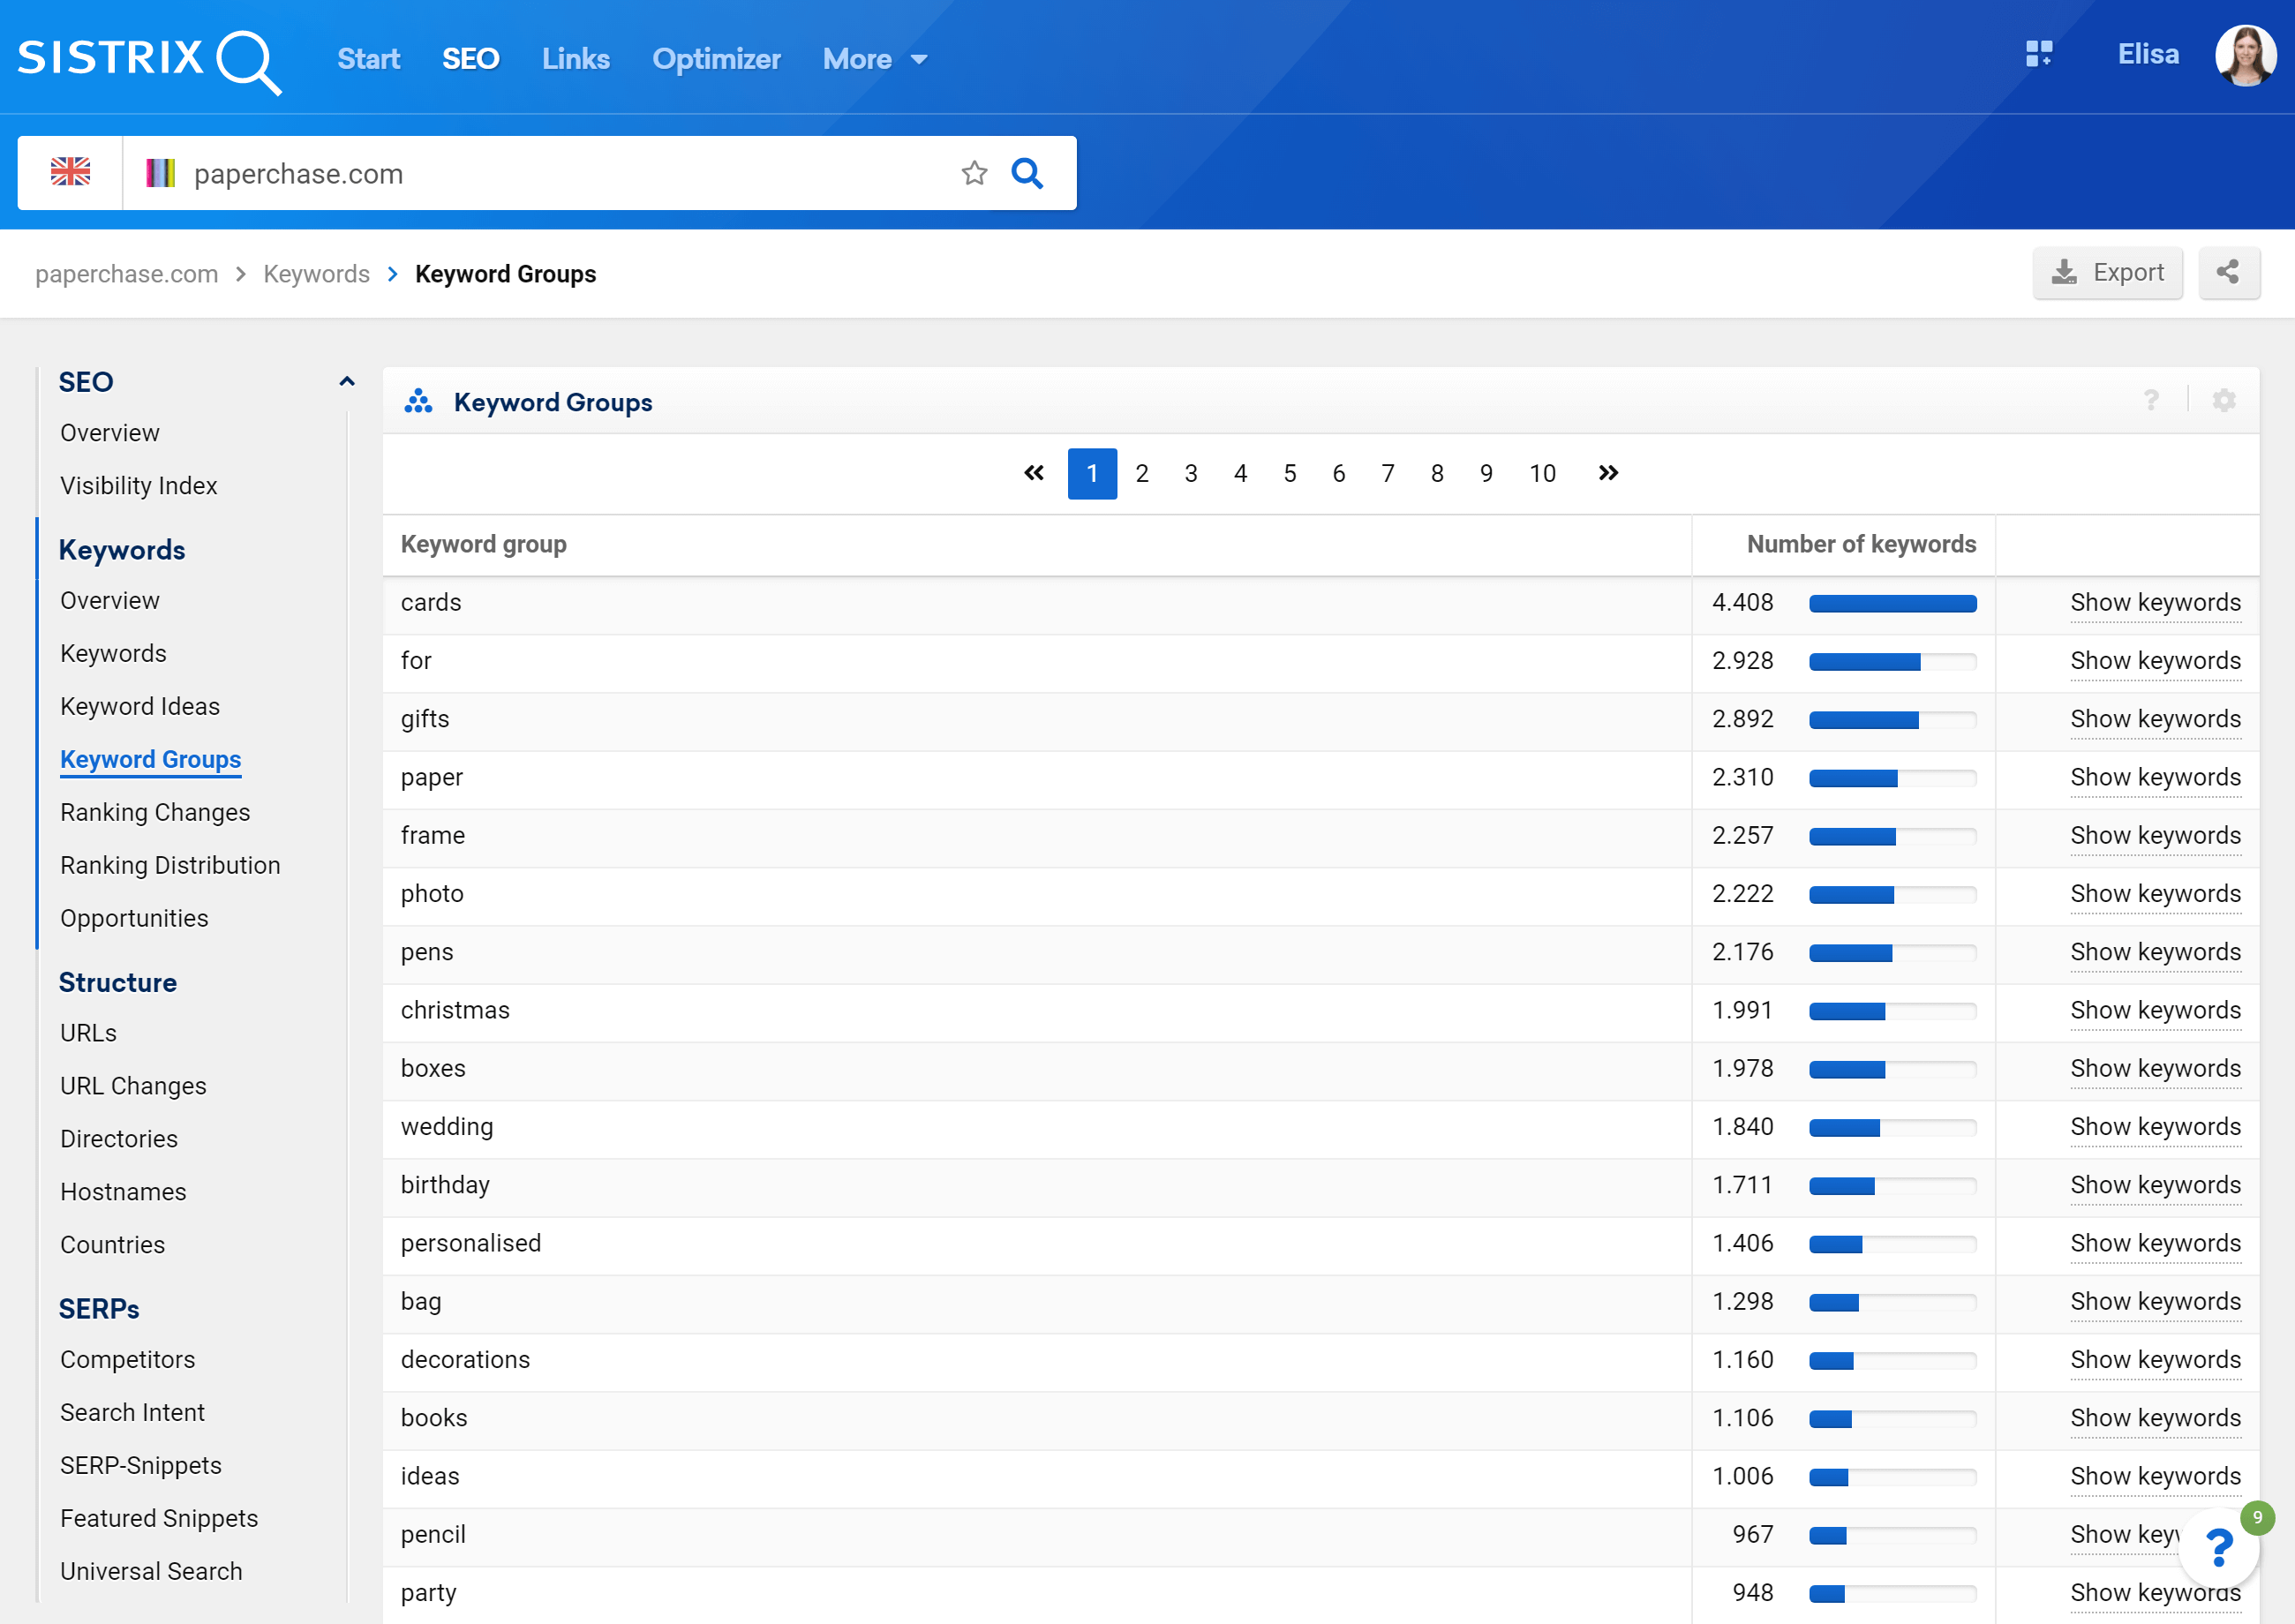 Keyword groups for the domain paperchase.com in the SISTRIX Toolbox